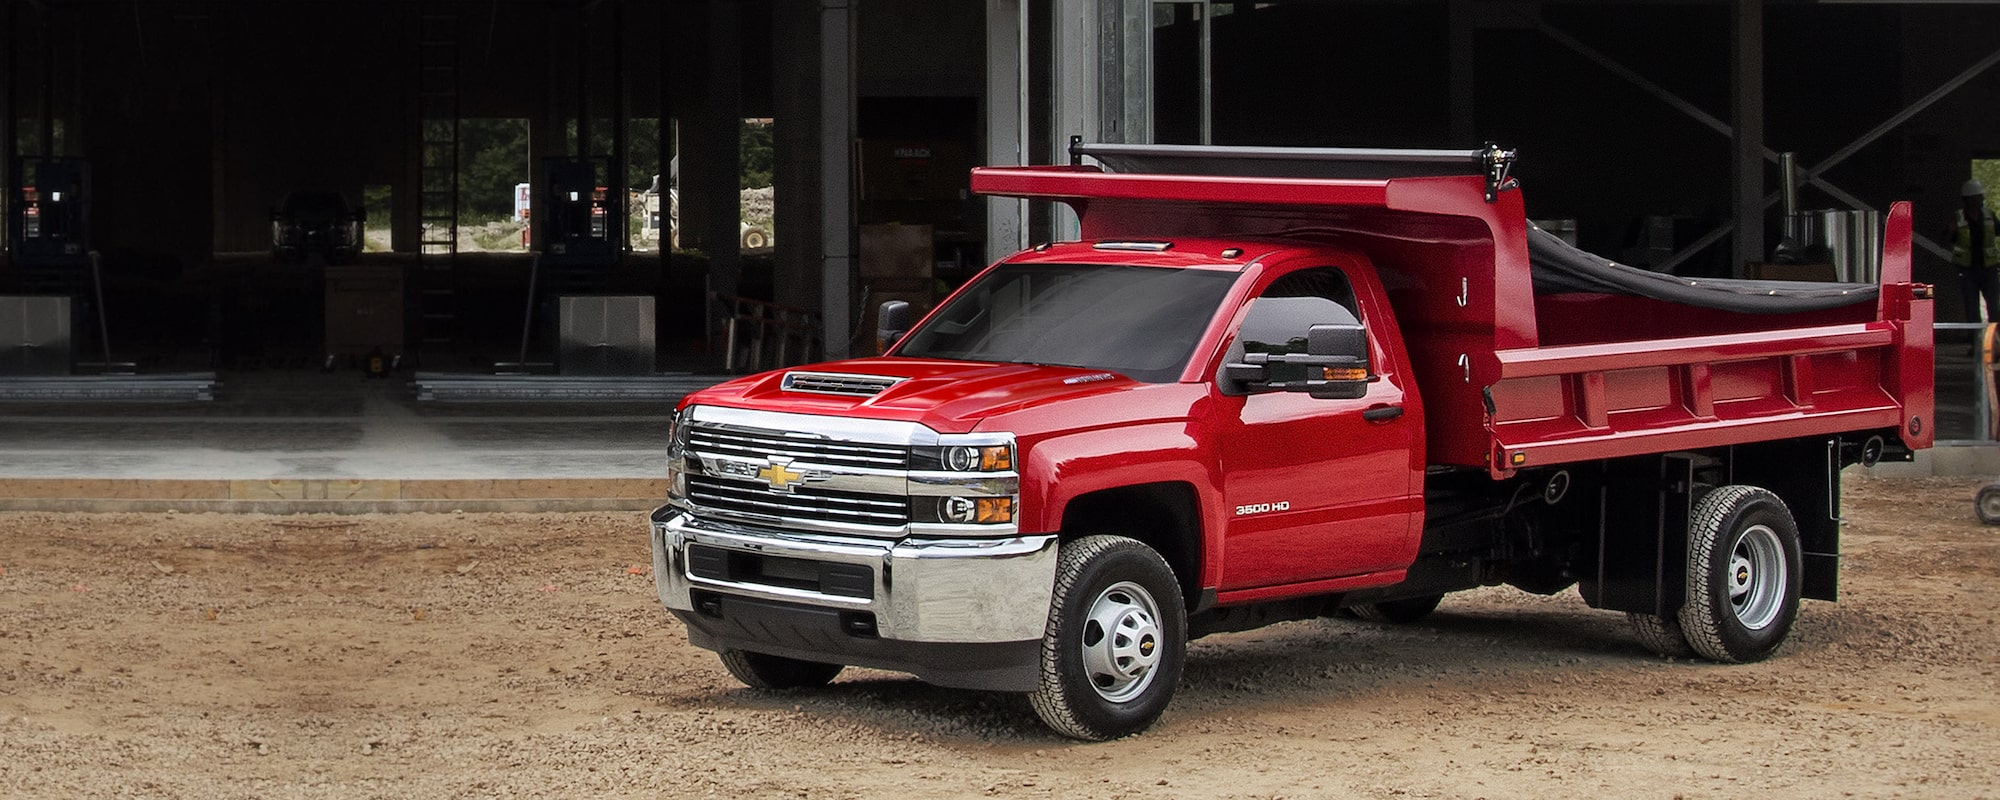 silverado 3500hd chassis commercial truck chevrolet rh chevrolet com USPS Flat Rate Flat Rate Box